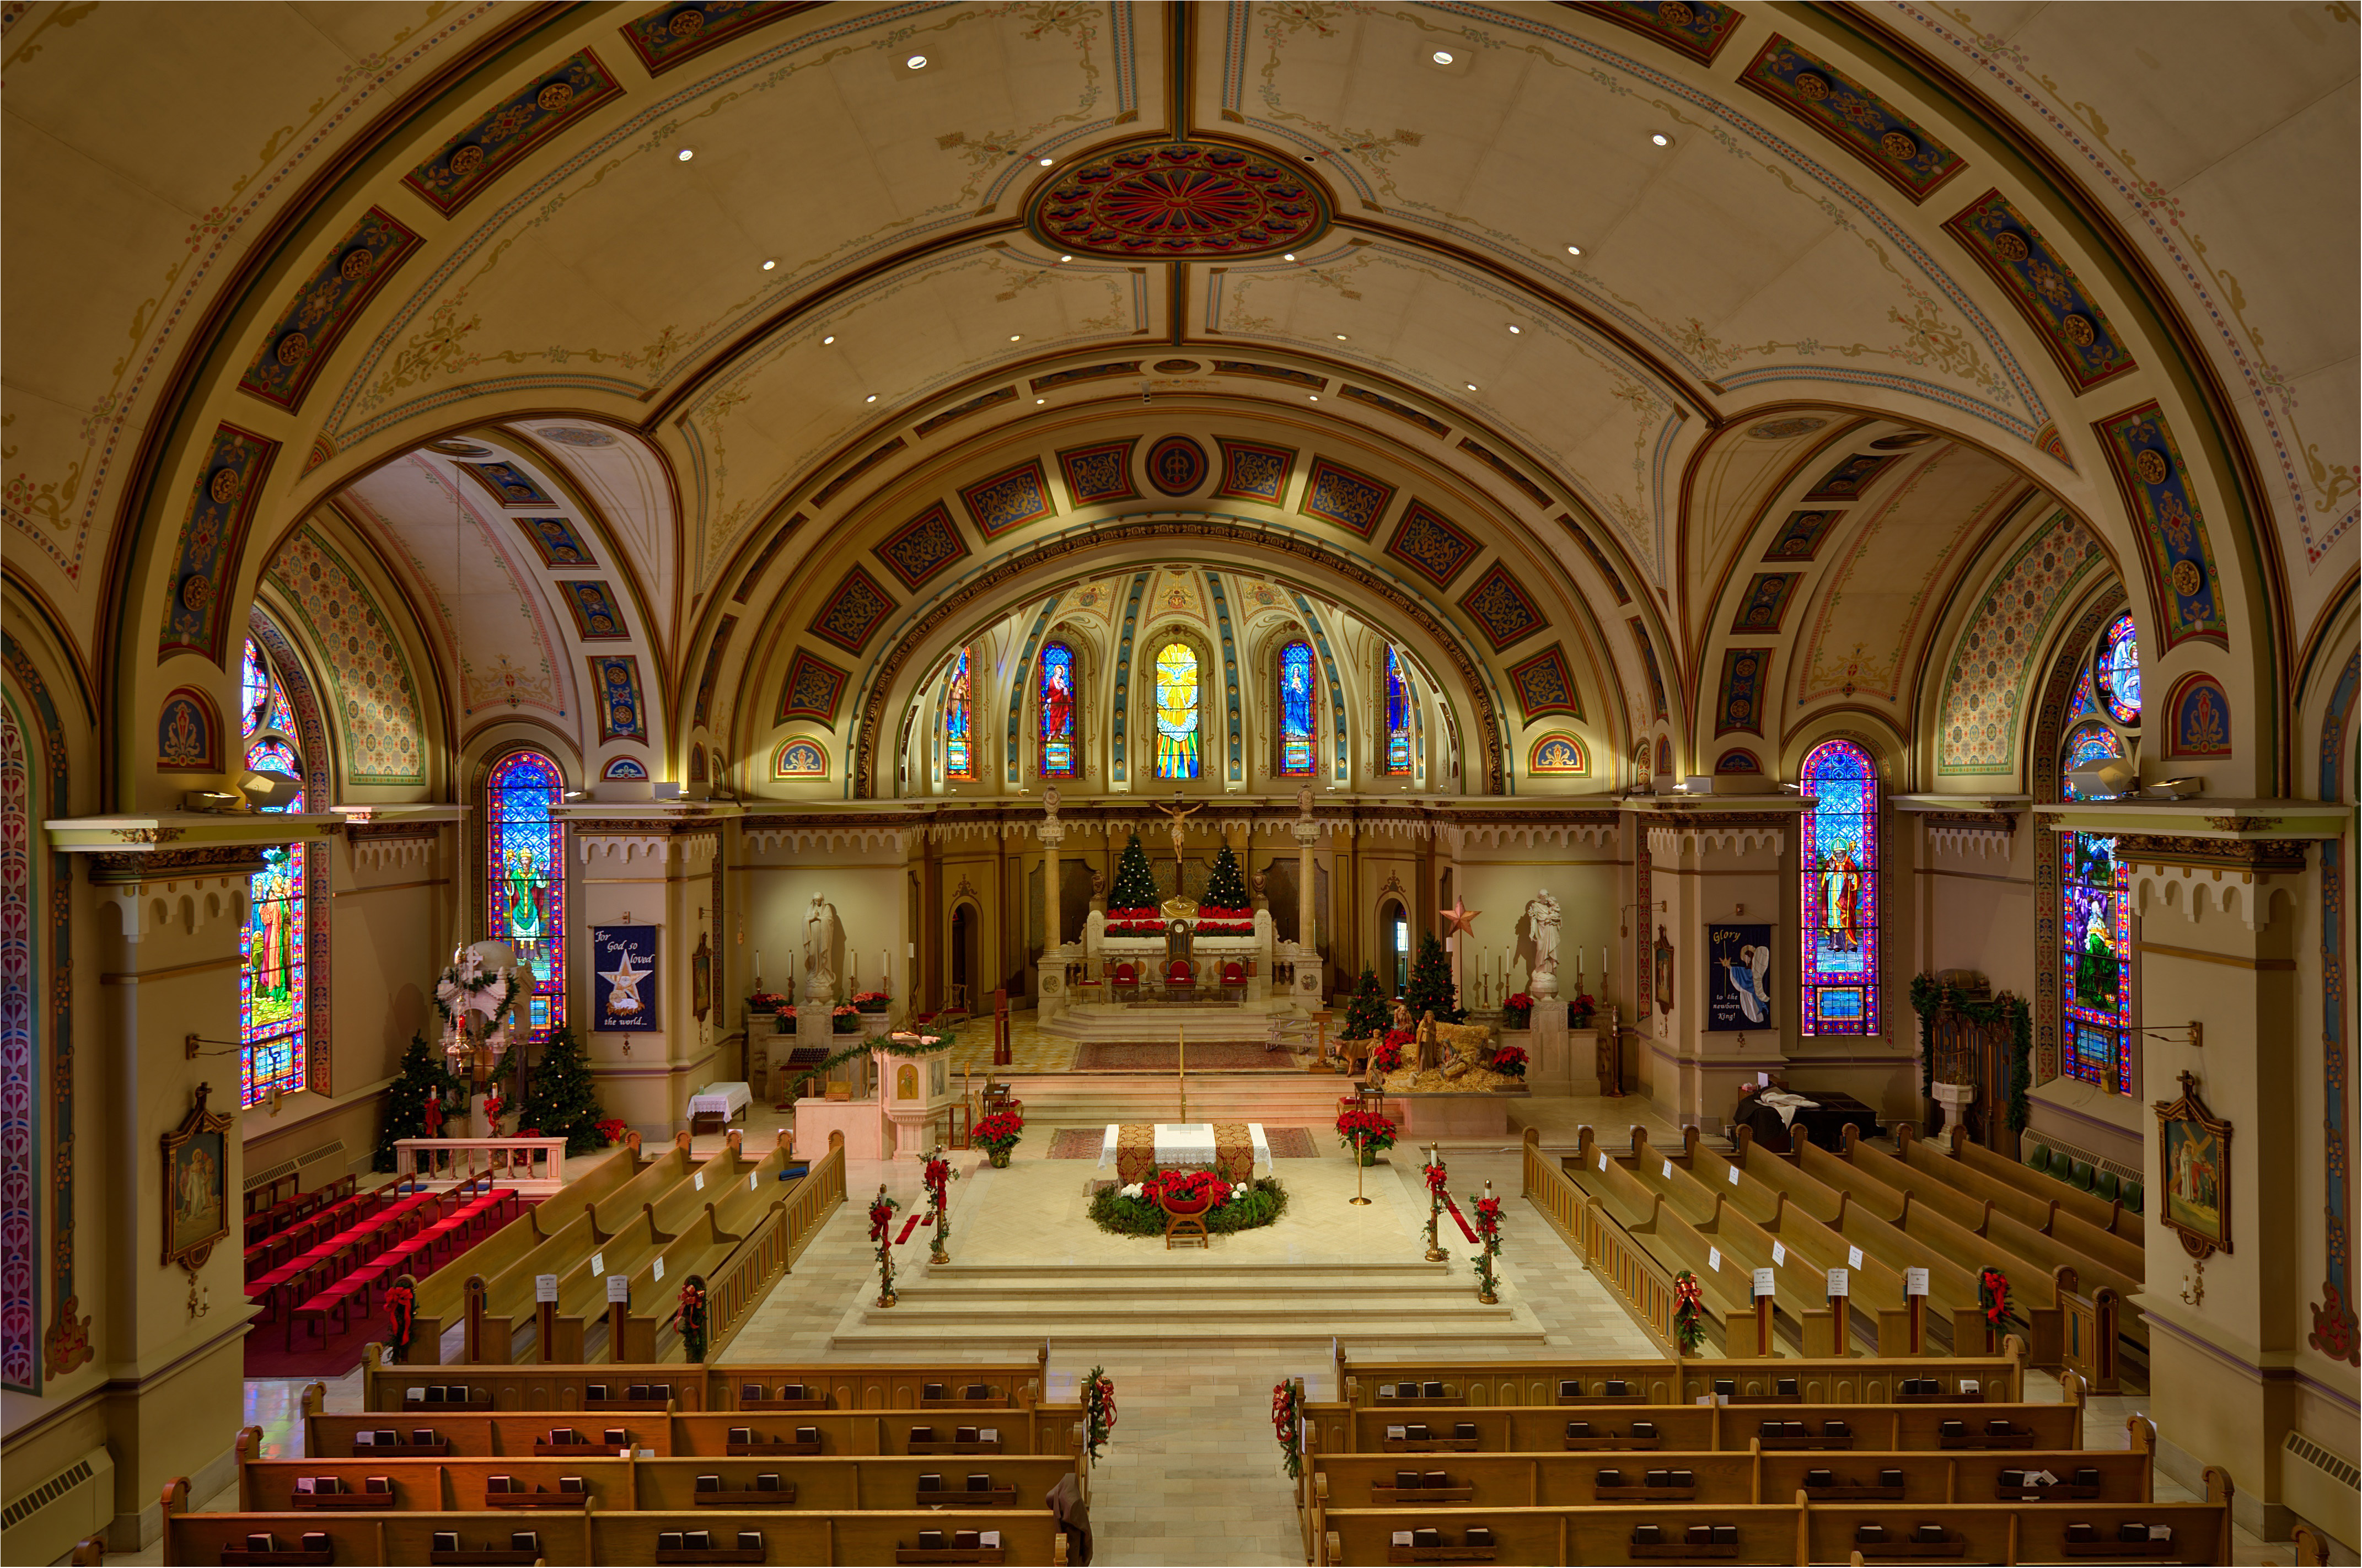 Cathedral interior (www.boisecathedral.org)